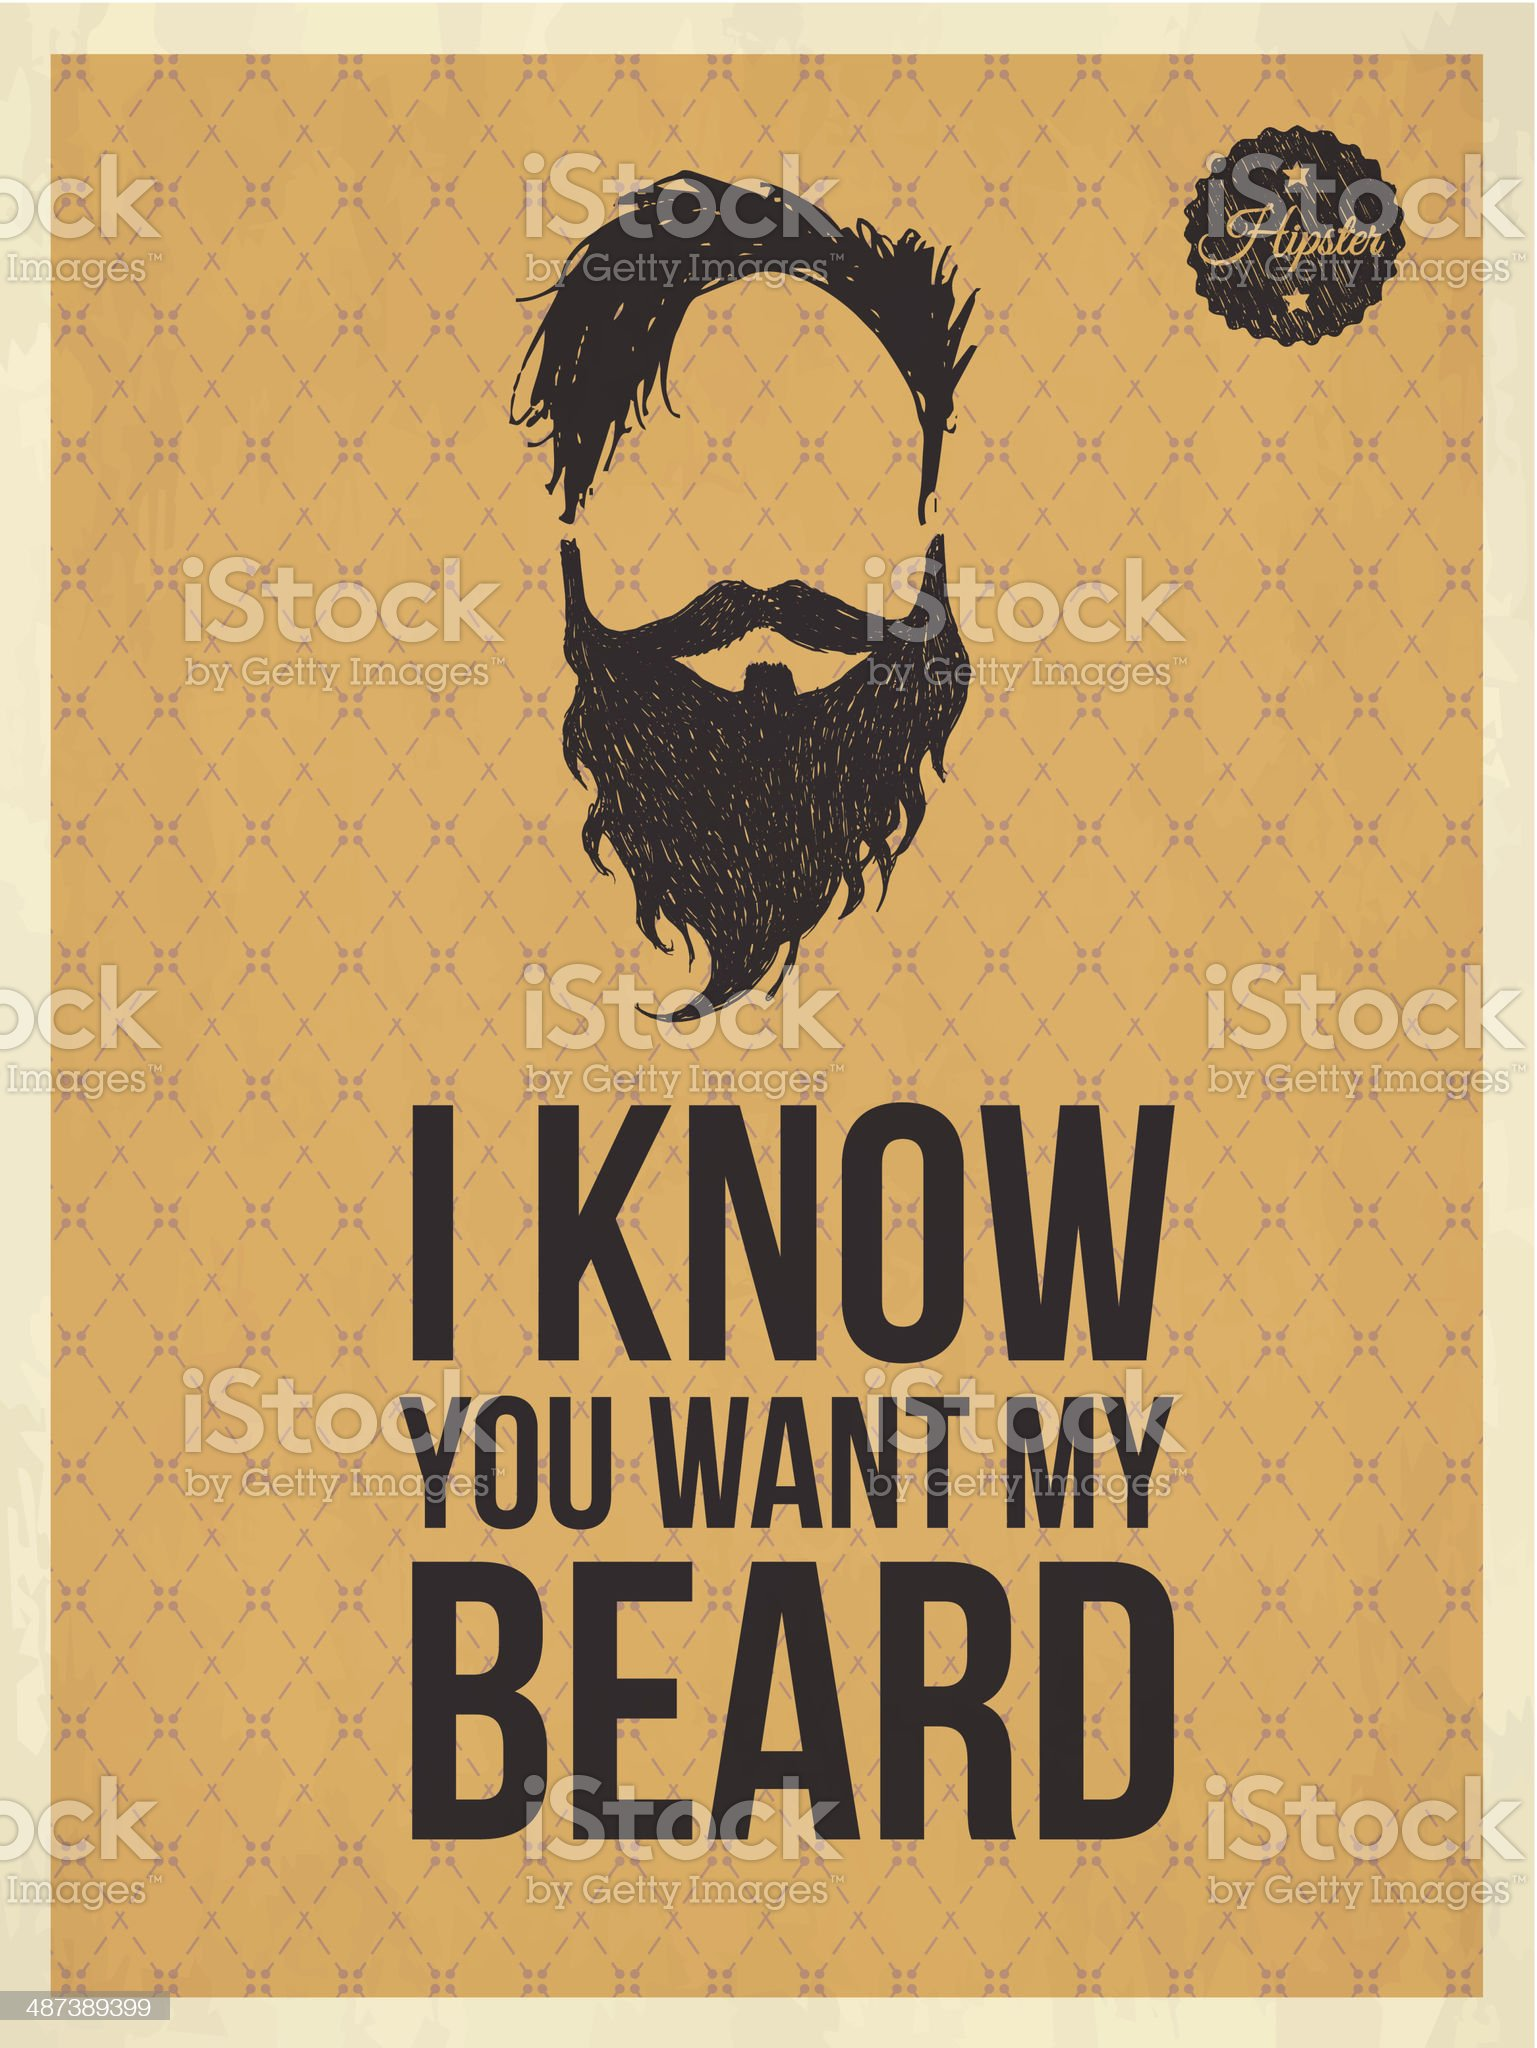 Hipster vintage trendy look quotes royalty-free stock vector art